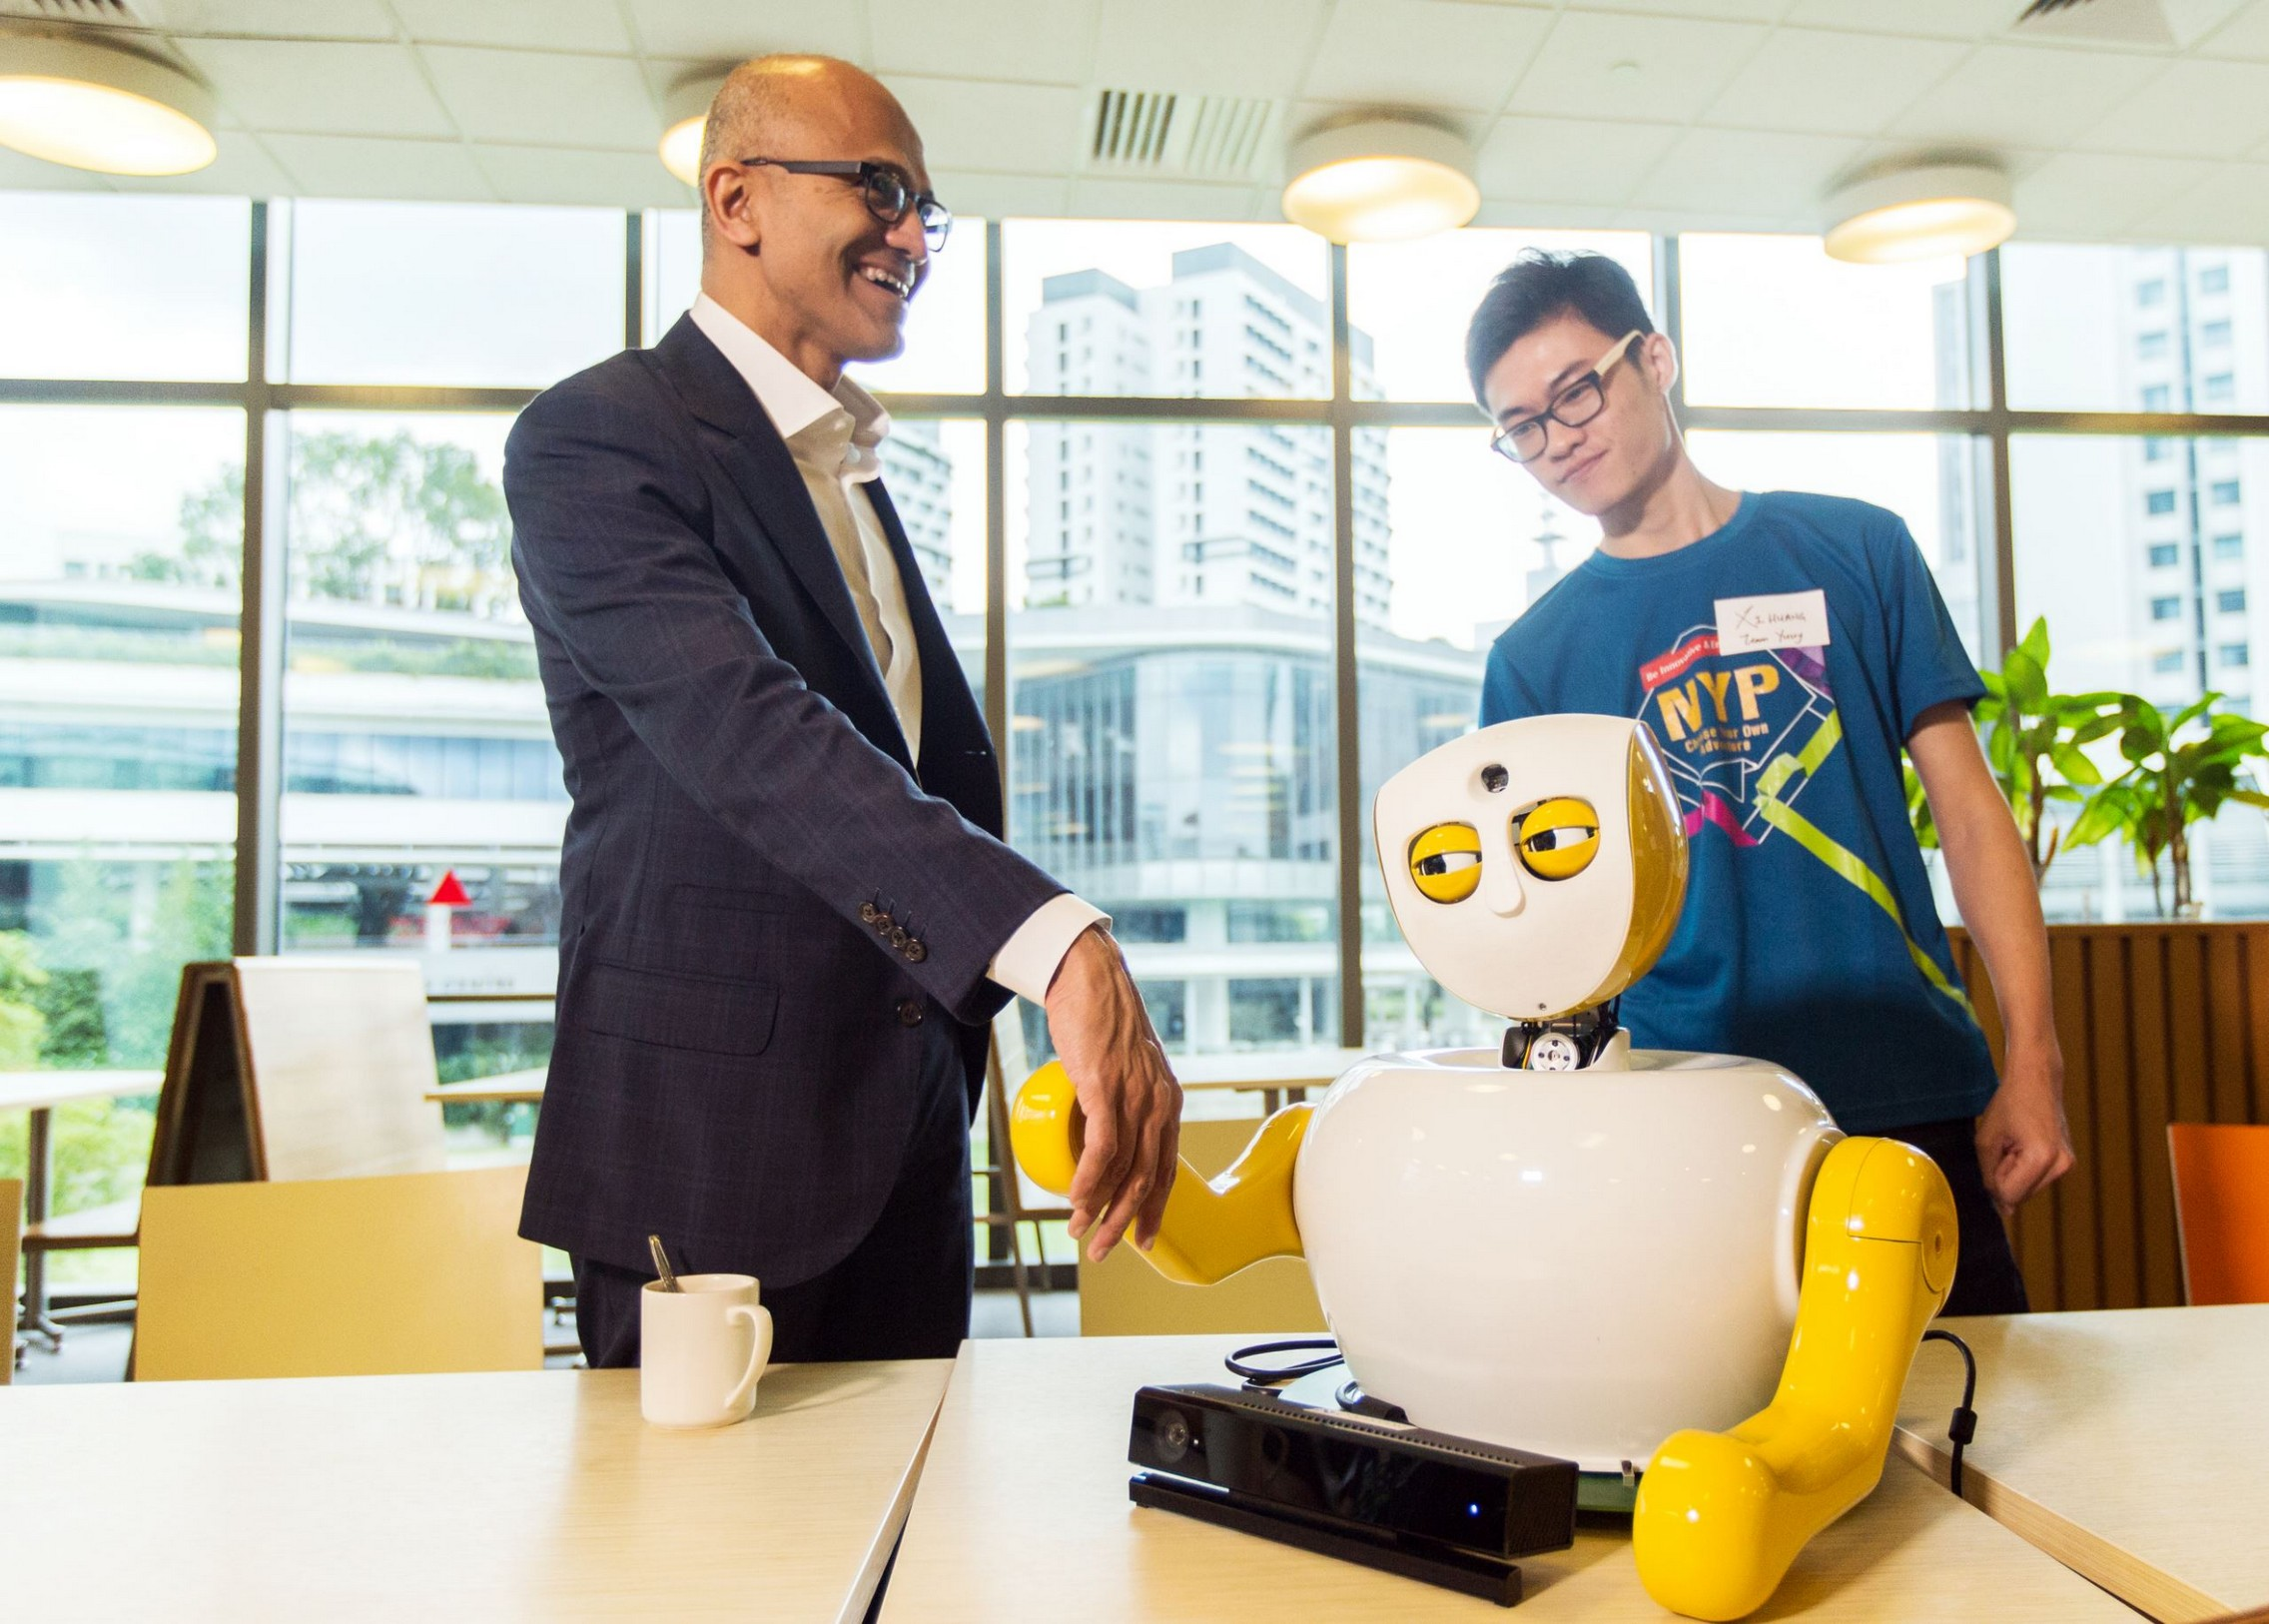 Microsoft CEO Satya Nadella meeting Ruth, an innovative social robot designed by student developers from Nanyang Polytechnic to assist the elderly as a personal assistant.